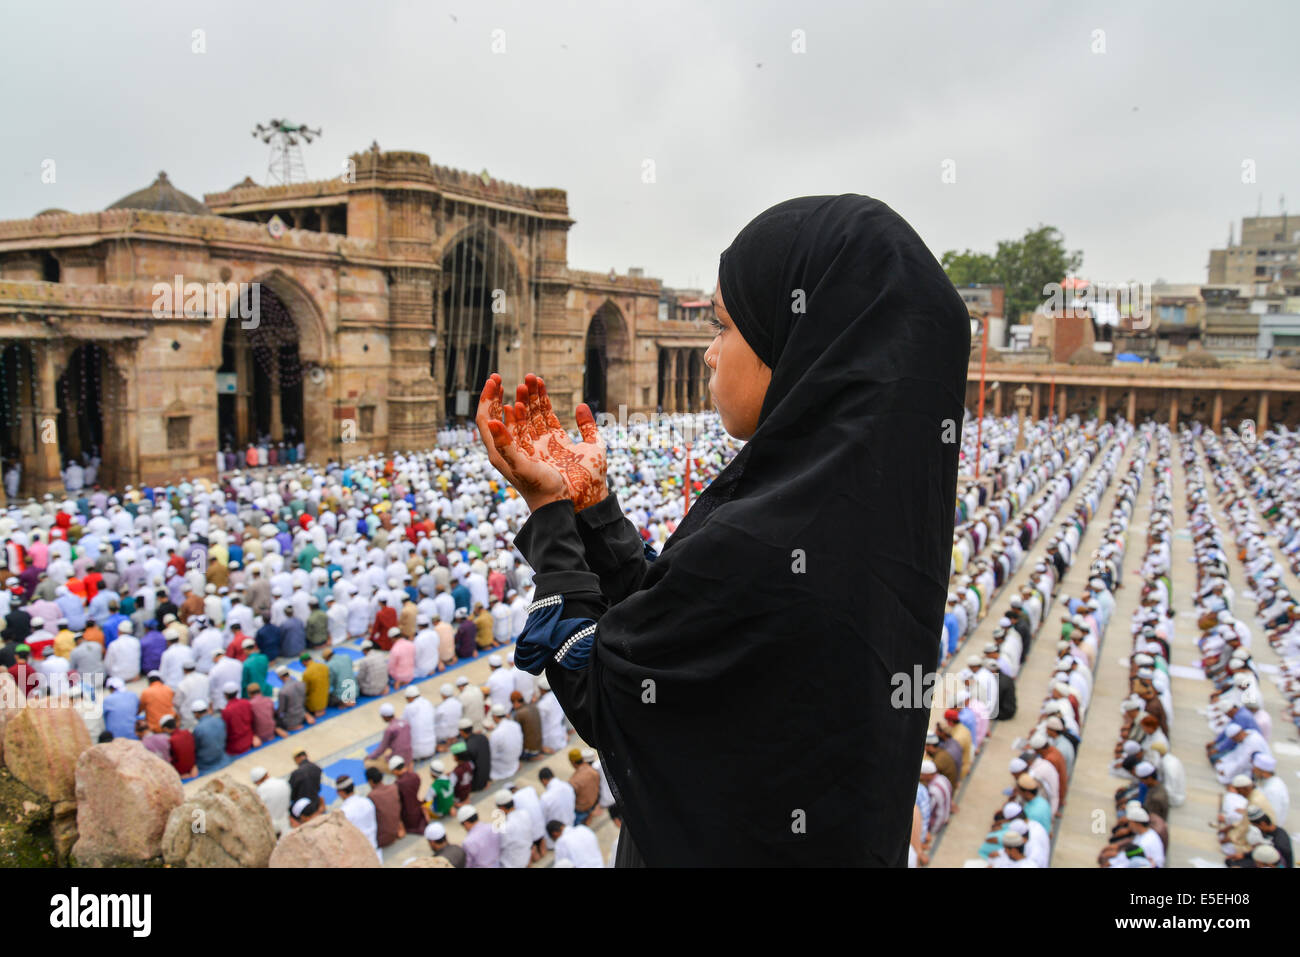 Ahmedabad, India. 29th July, 2014.  Muslims celebrating Eid al-Fitr which marks the end of the month of Ramadan, - Stock Image